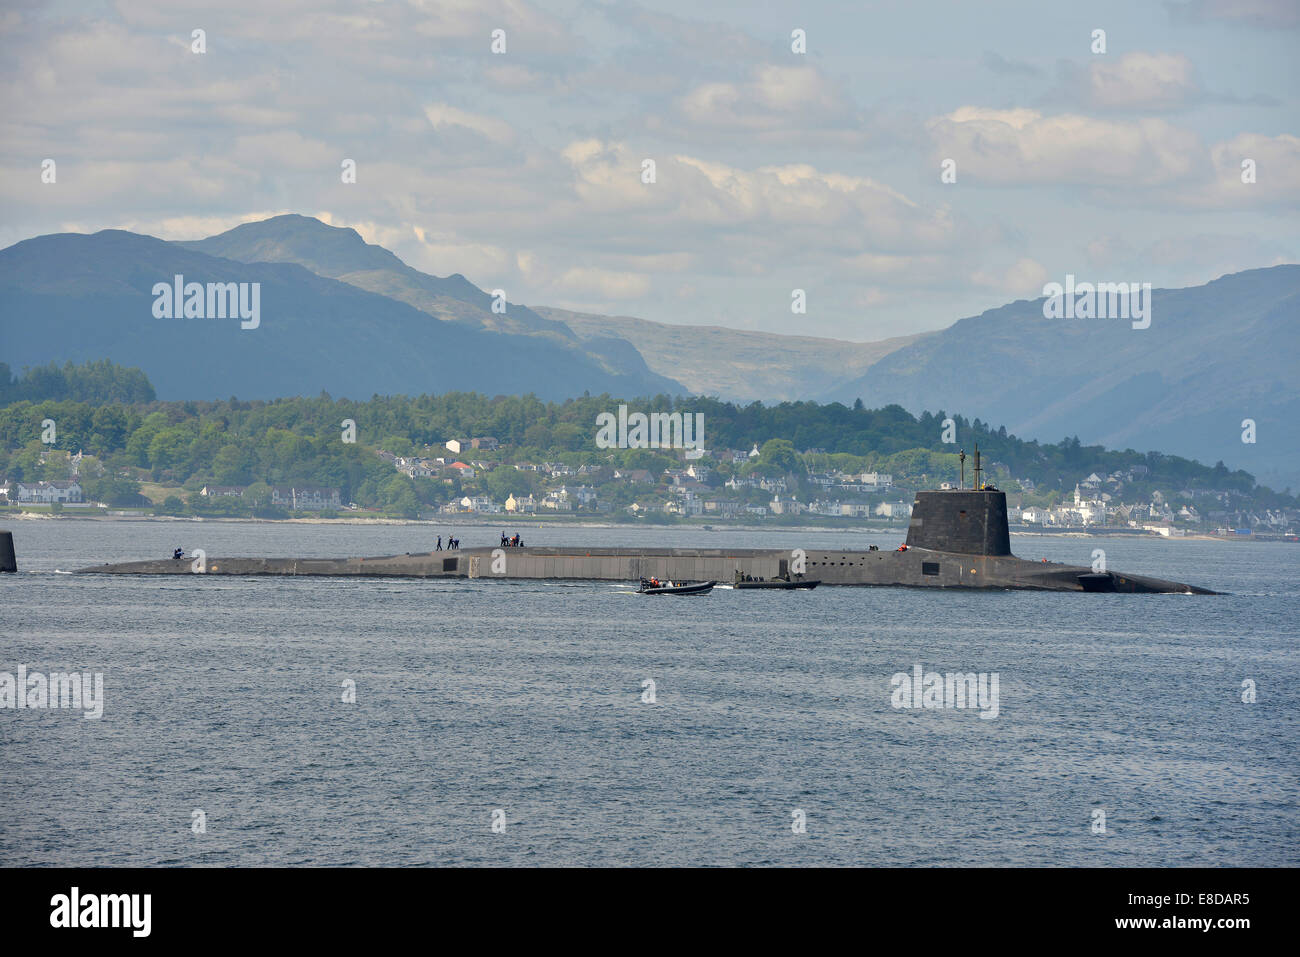 Nuclear submarine of the British fleet in the Firth of Clyde, Scotland - Stock Image